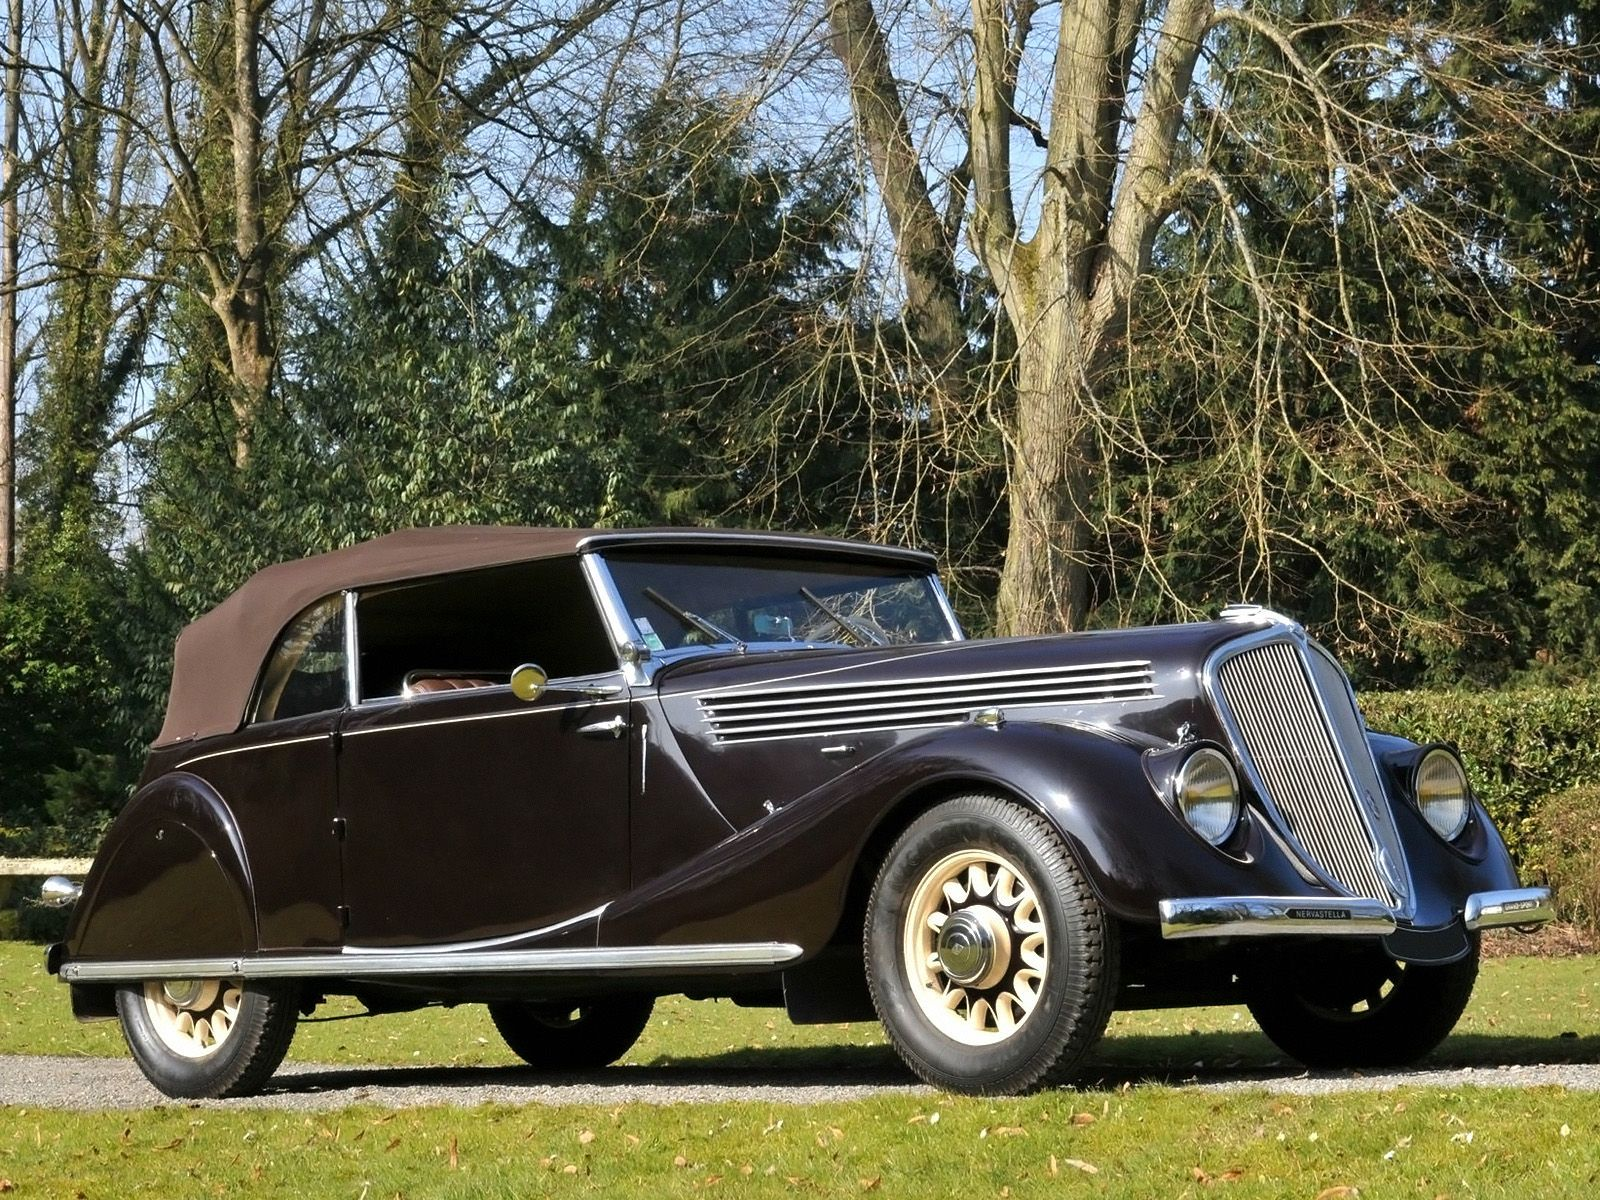 1935 renault nervastella grand sport cabriolet. Black Bedroom Furniture Sets. Home Design Ideas